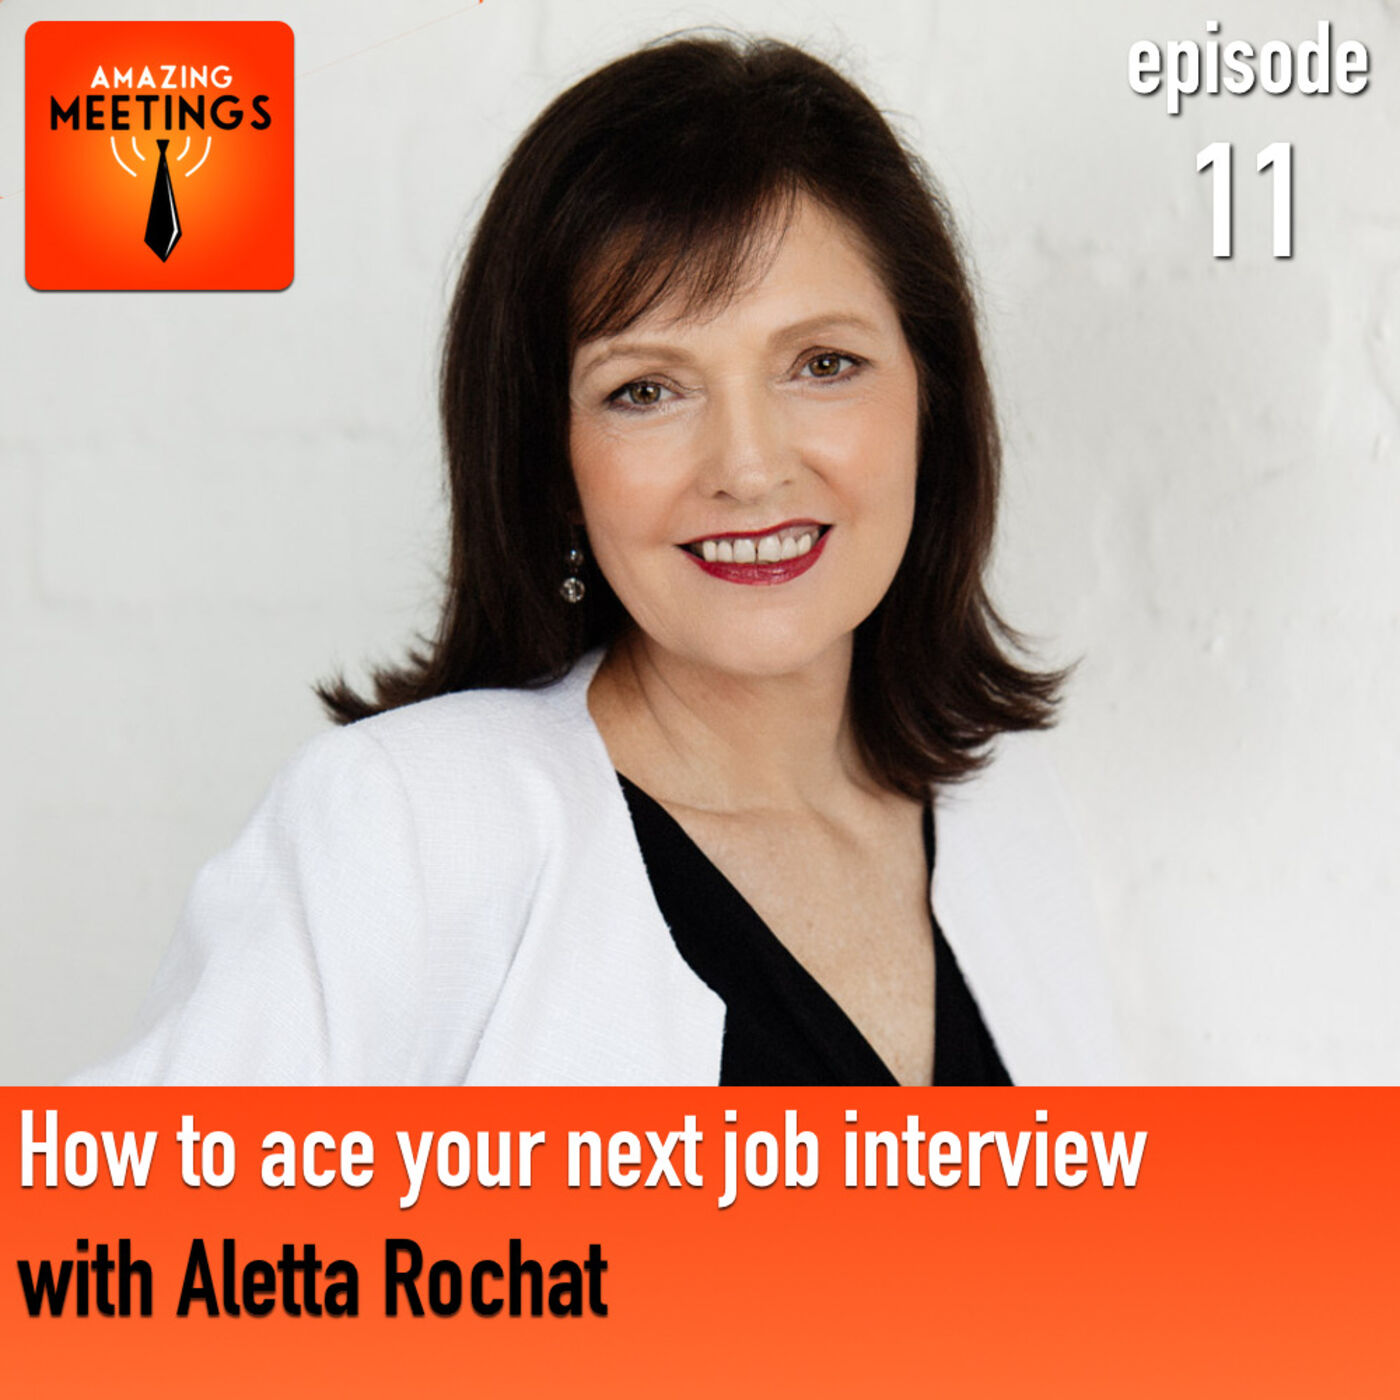 How to ace your next job interview with Aletta Rochat